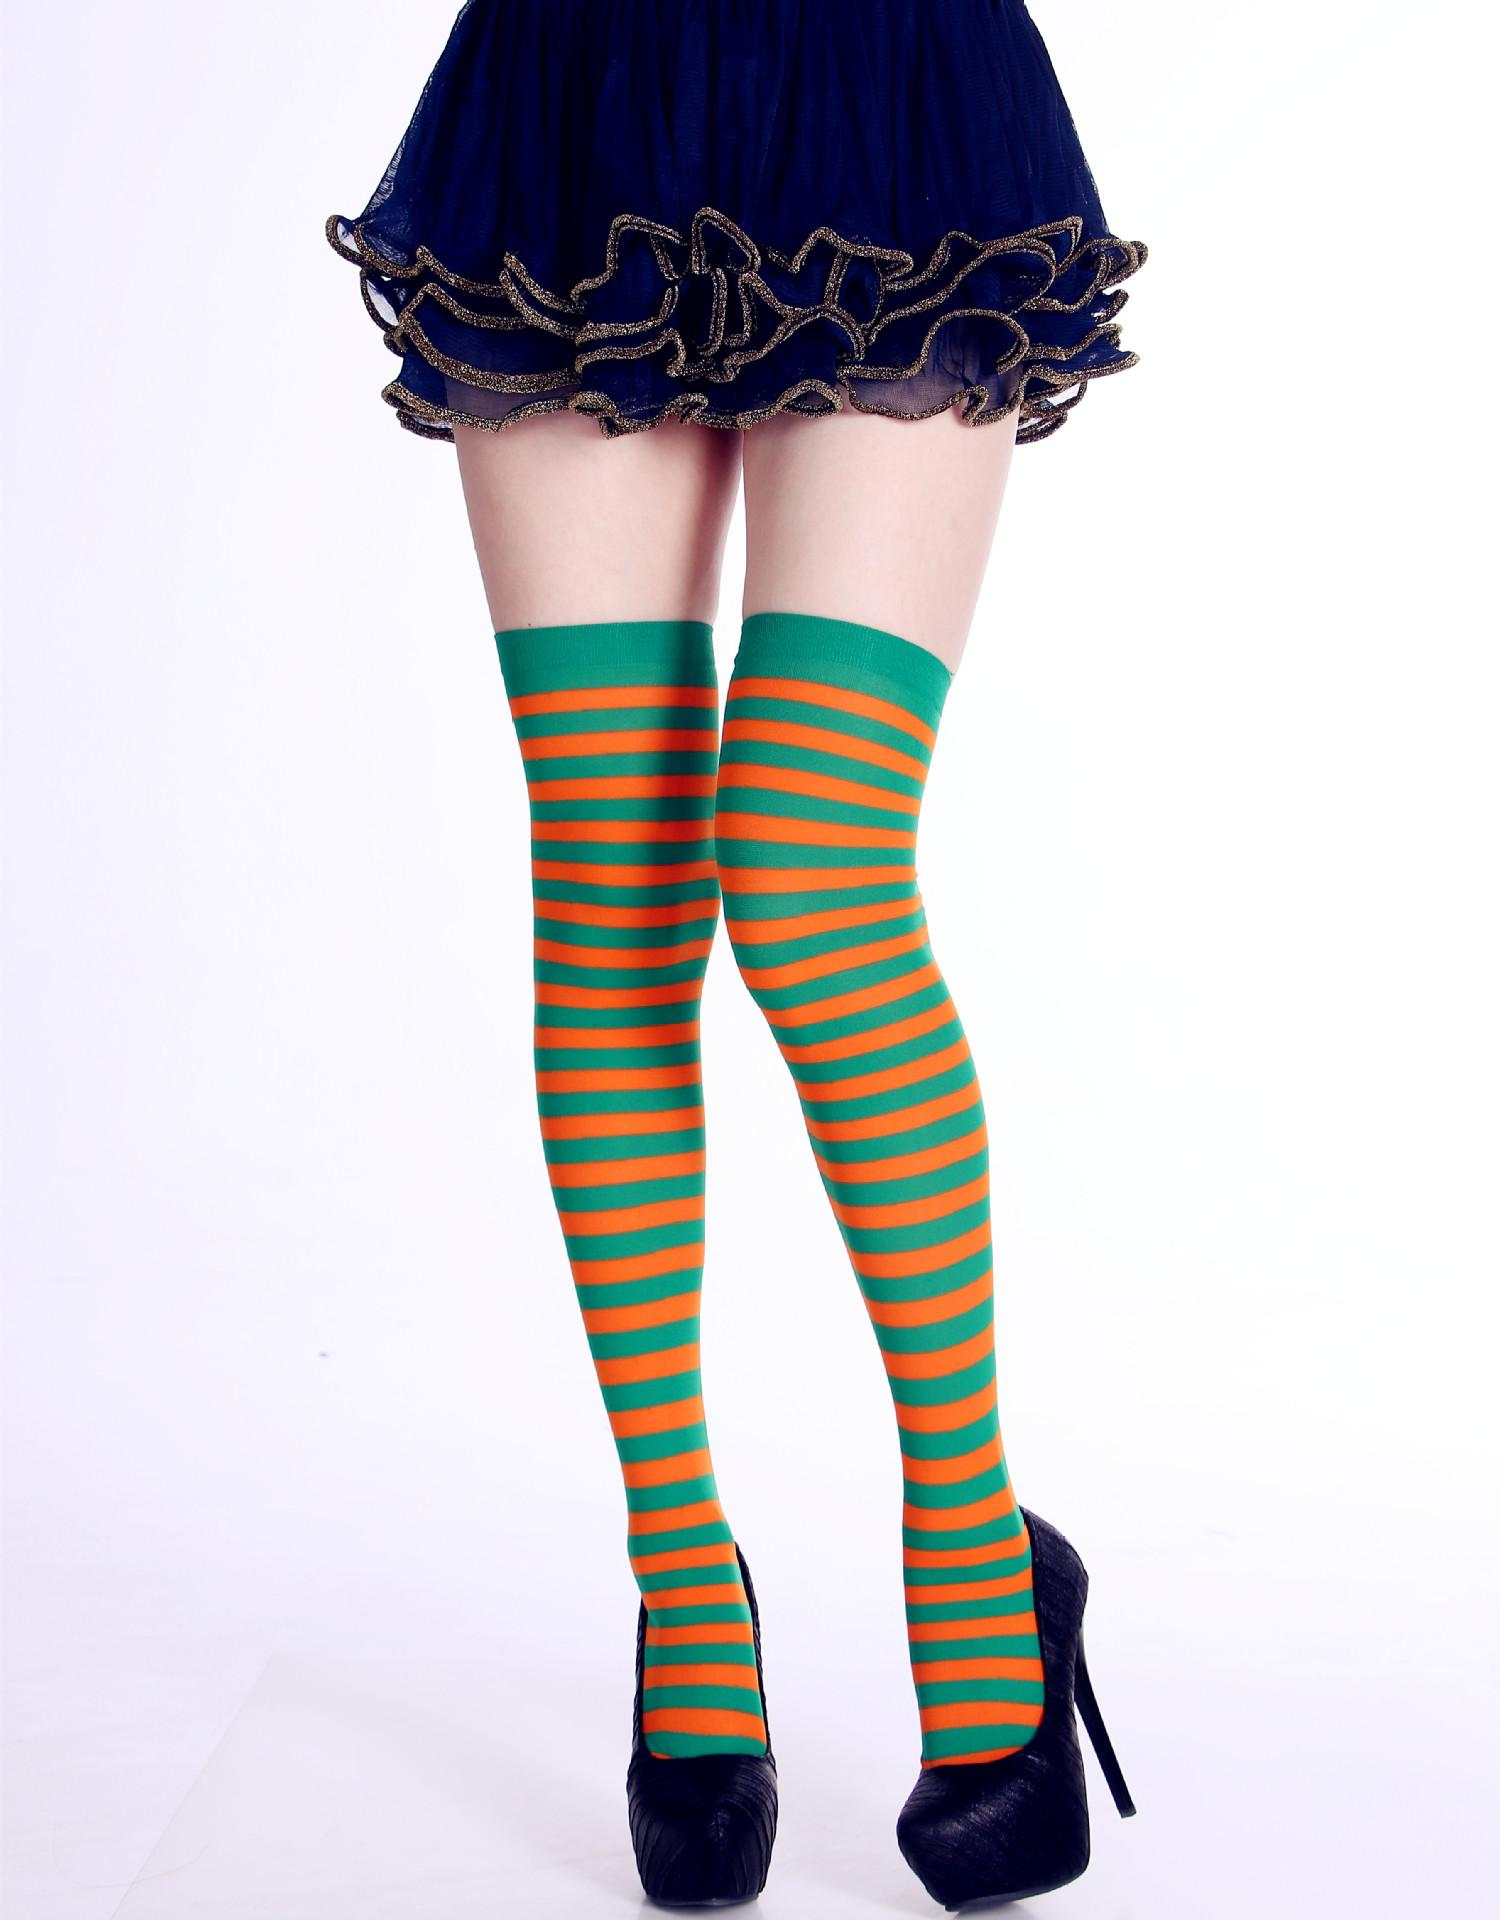 e53f9e74675 2019 Women Over Knee Long Sock Striped Thigh High Socks Cute Cosplay  Costume Stockings For Party Favors Costume Masquerade Performance Costum  Pro From ...